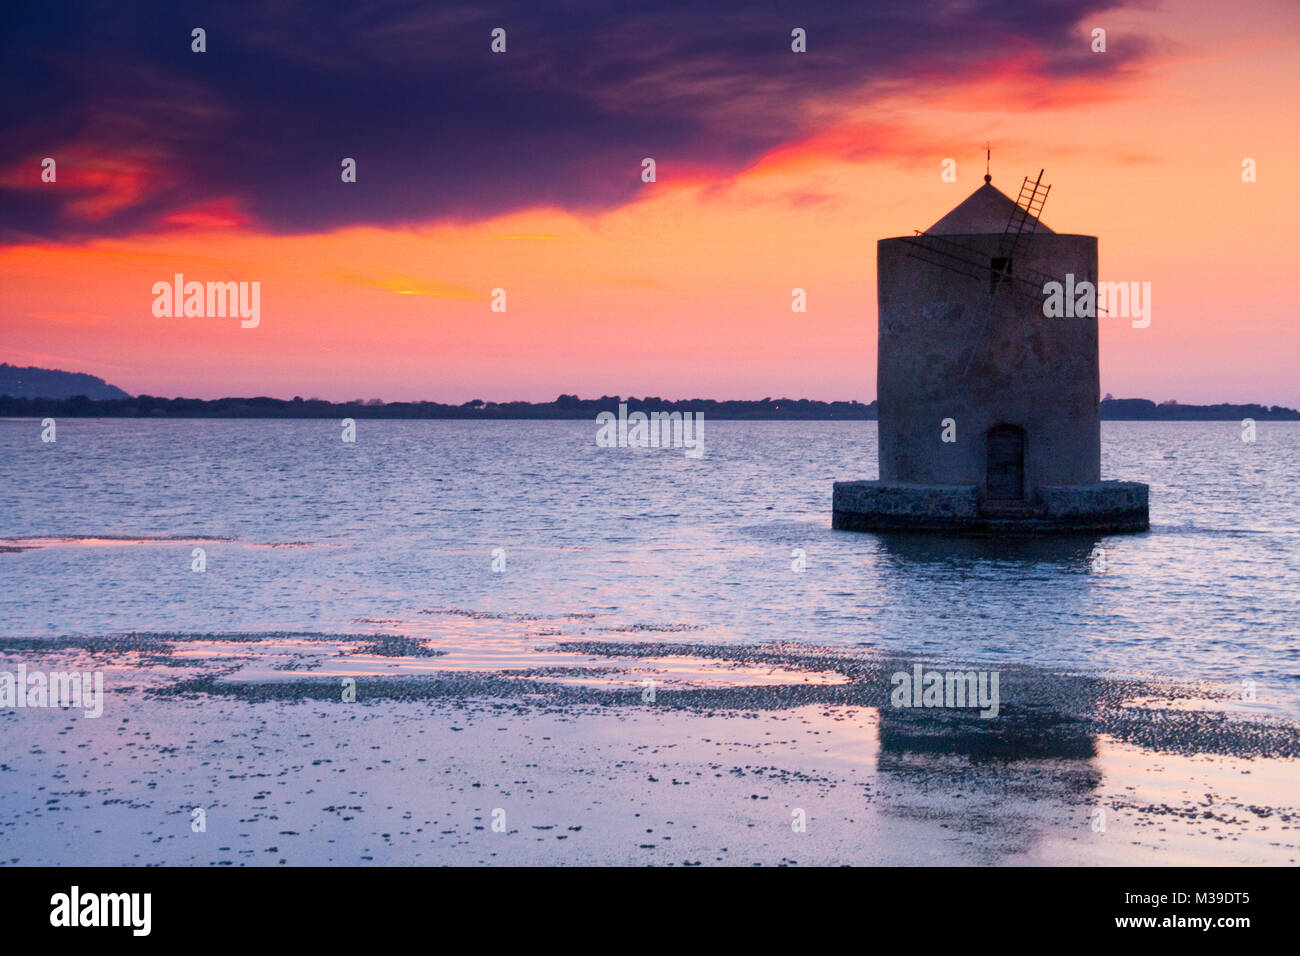 Monte Argentario, Orbetello, Tuscany - A solitary windmill in Orbetello's lagoon, in Tuscany. It is the so-called - Stock Image